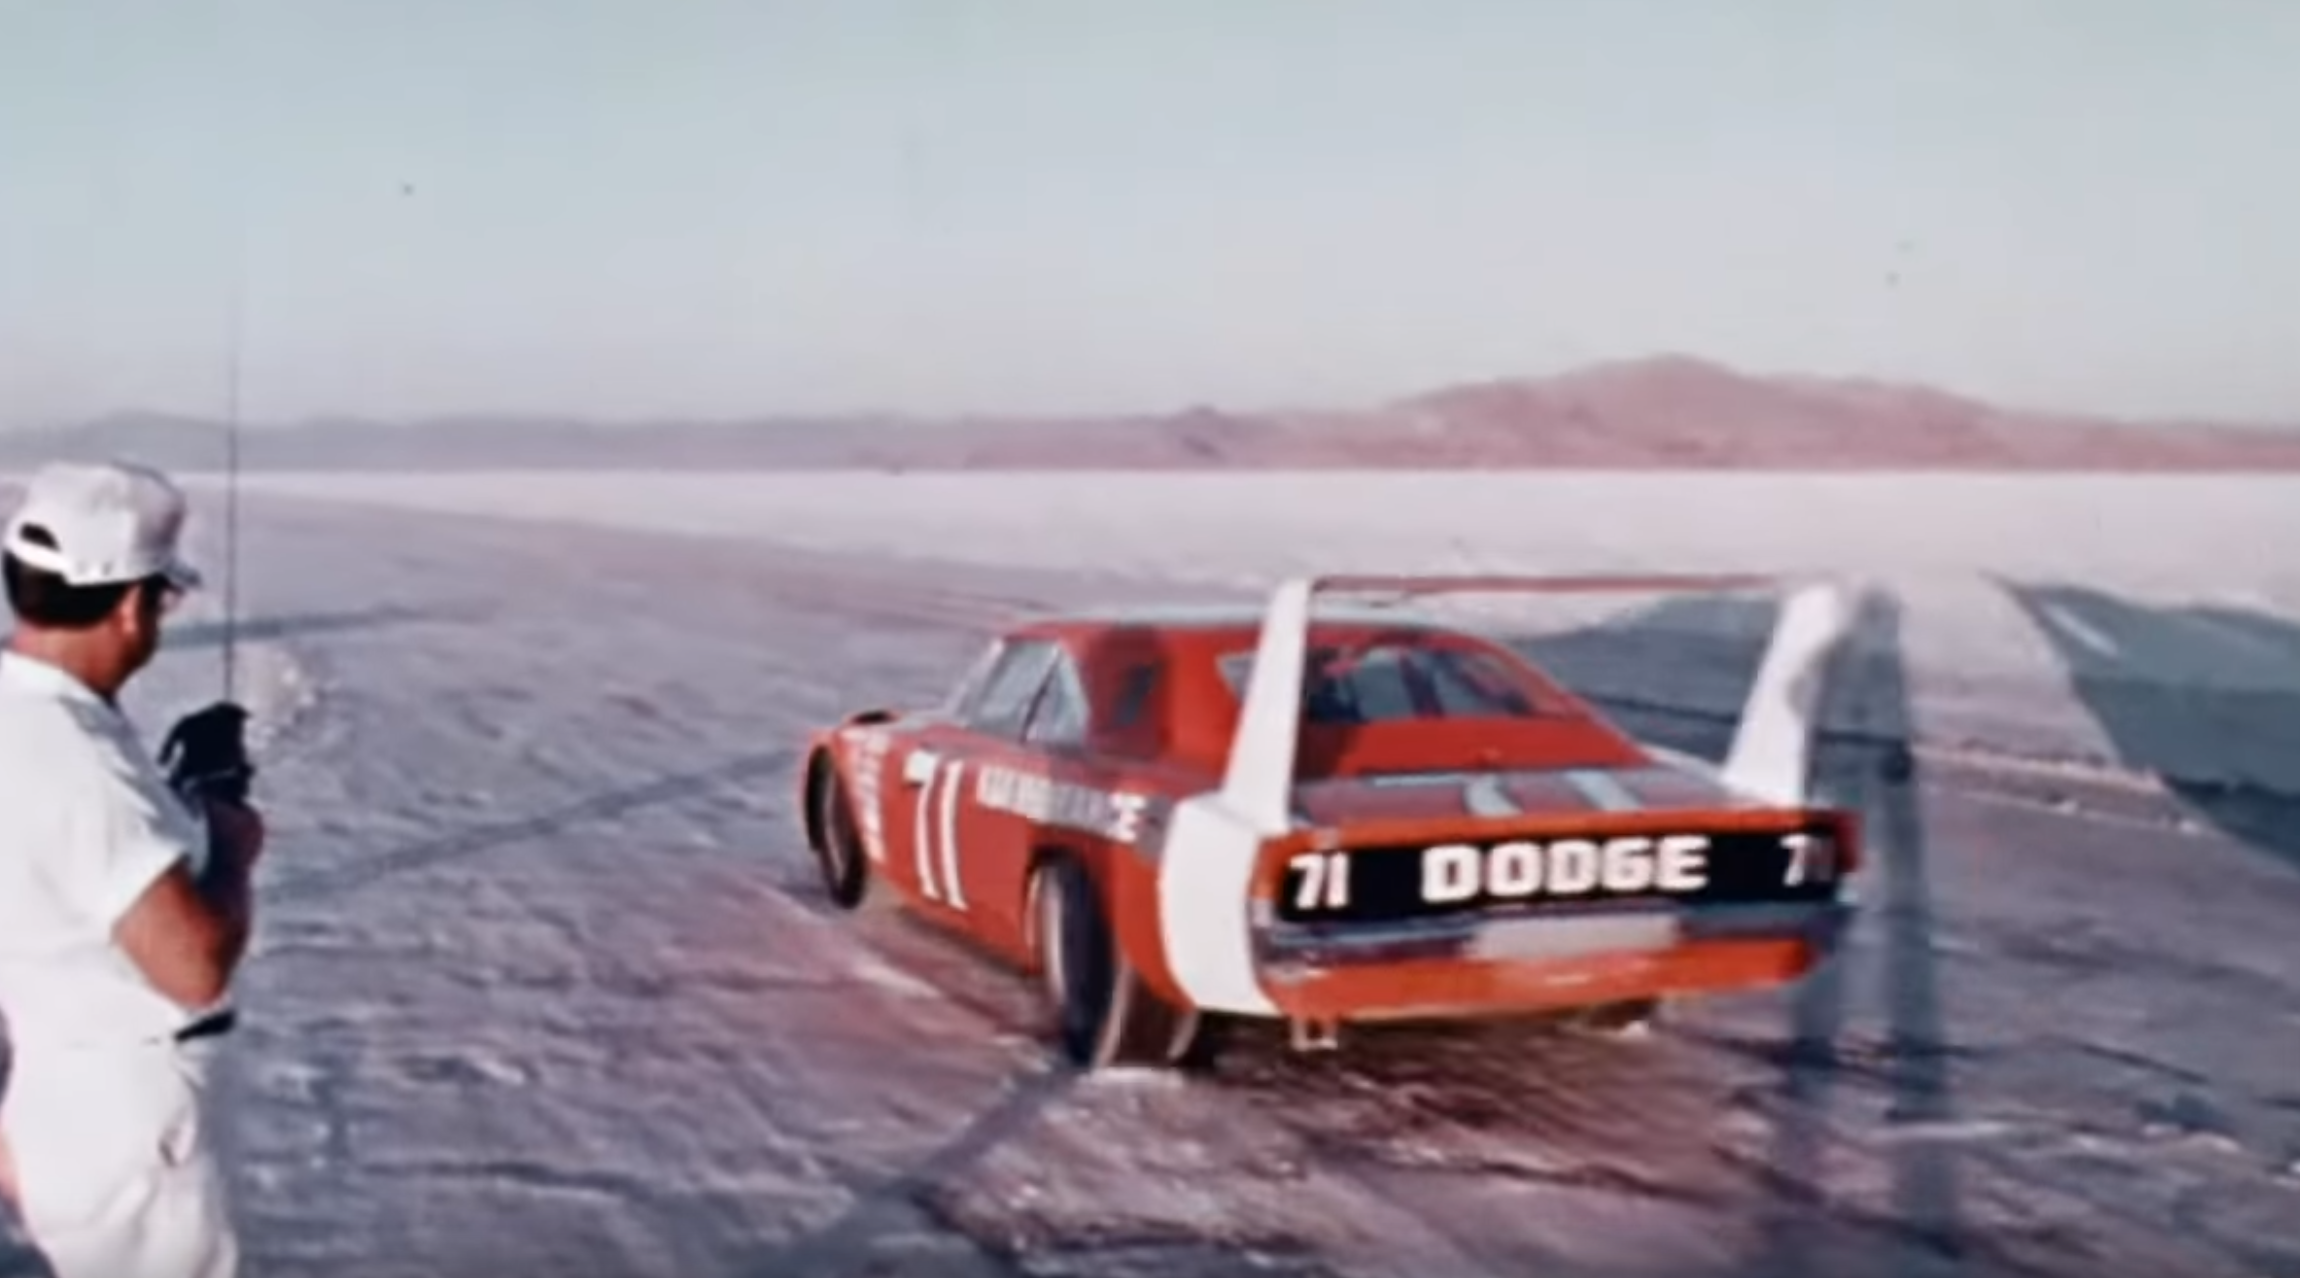 Nascar Drivers Used A Banned 1969 Dodge Daytona To Set Speed Records